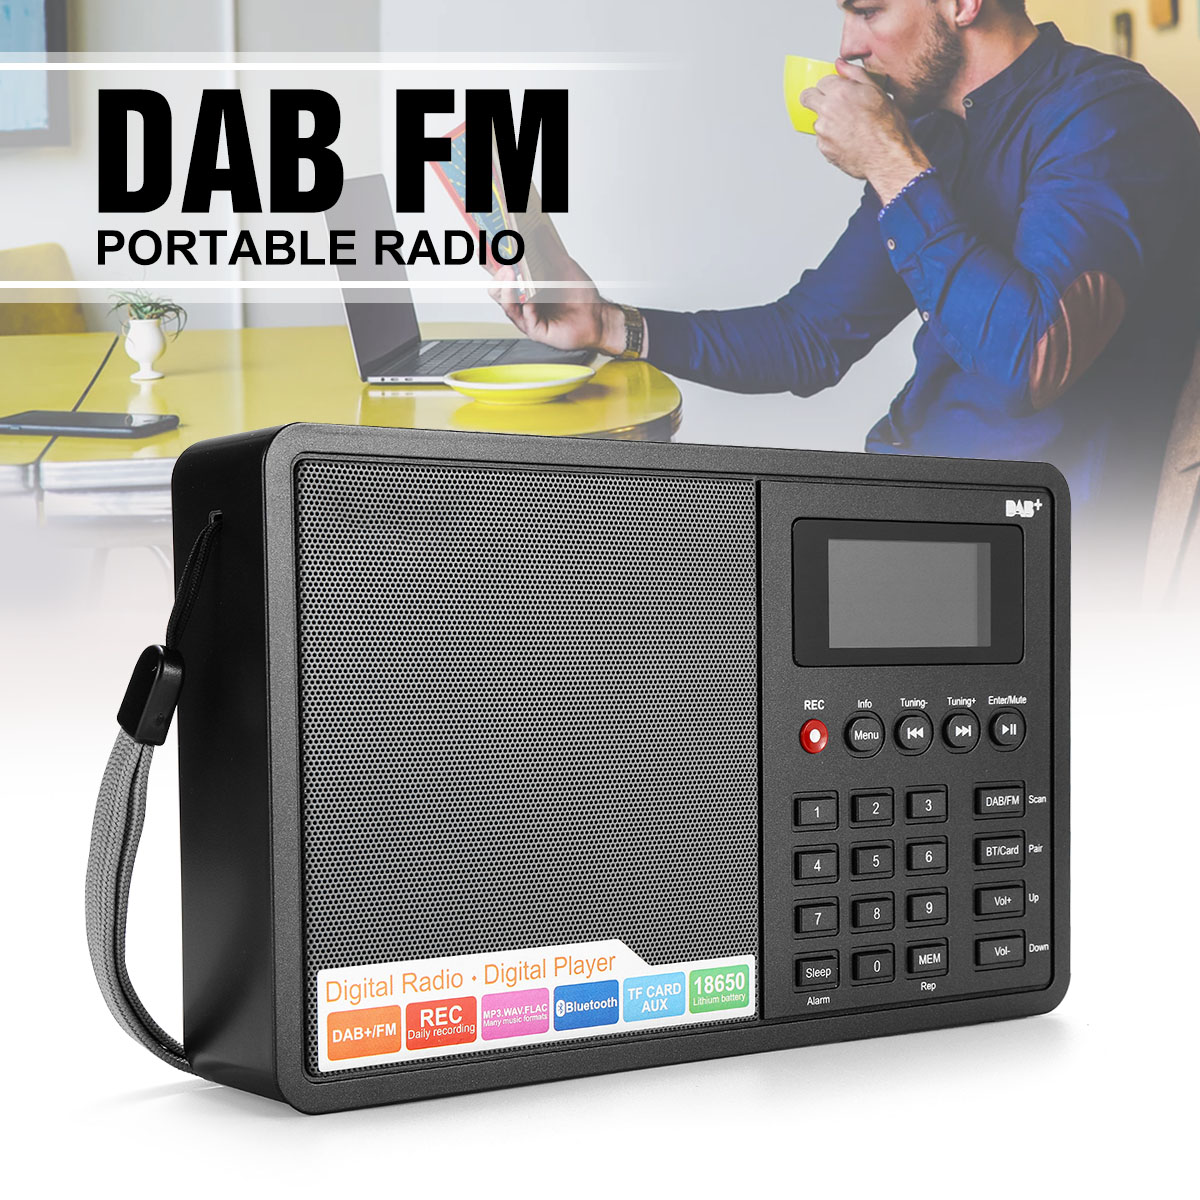 Portable DAB/DAB+ FM Bluetooth4.0 1.8 Inch TFT Screen LCD Digital Radio Music Speaker MP3 USB Alarm Clock Digital Support RDS 5pcs pocket radio 9k portable dsp fm mw sw receiver emergency radio digital alarm clock automatic search radio station y4408